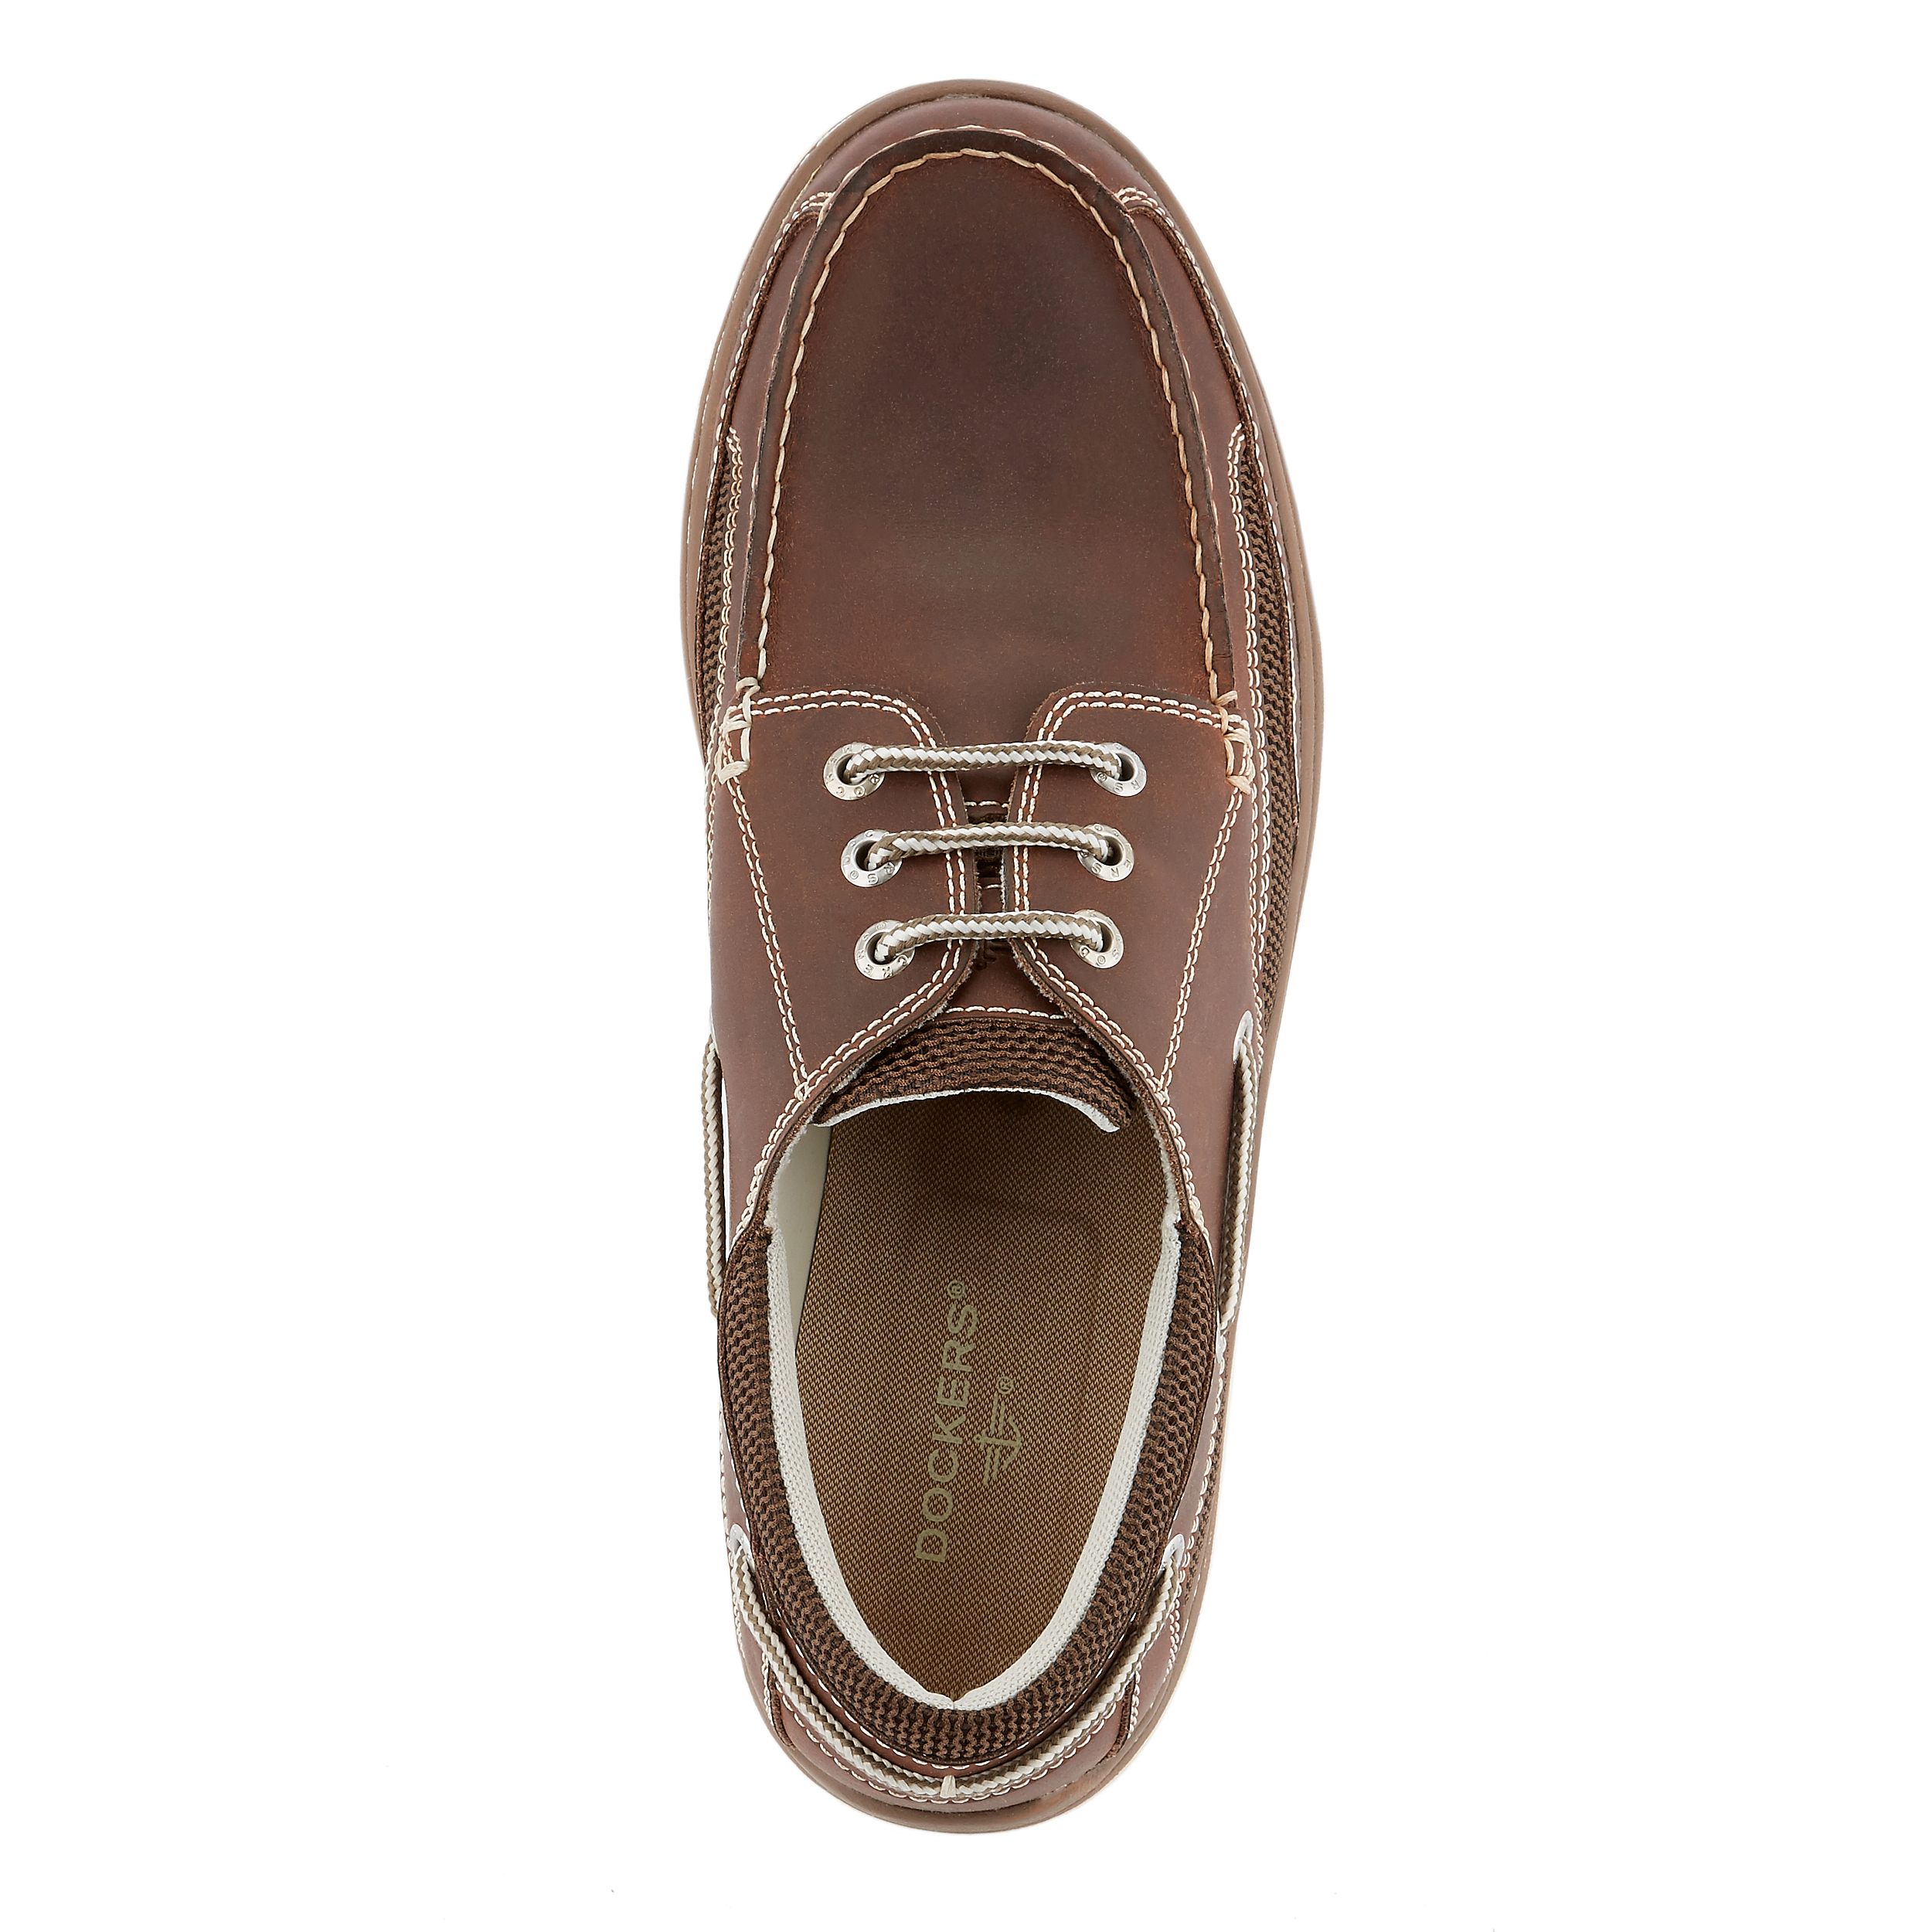 Dockers-Mens-Lakeport-Genuine-Leather-Casual-Rubber-Sole-Sport-Boat-Shoe thumbnail 20